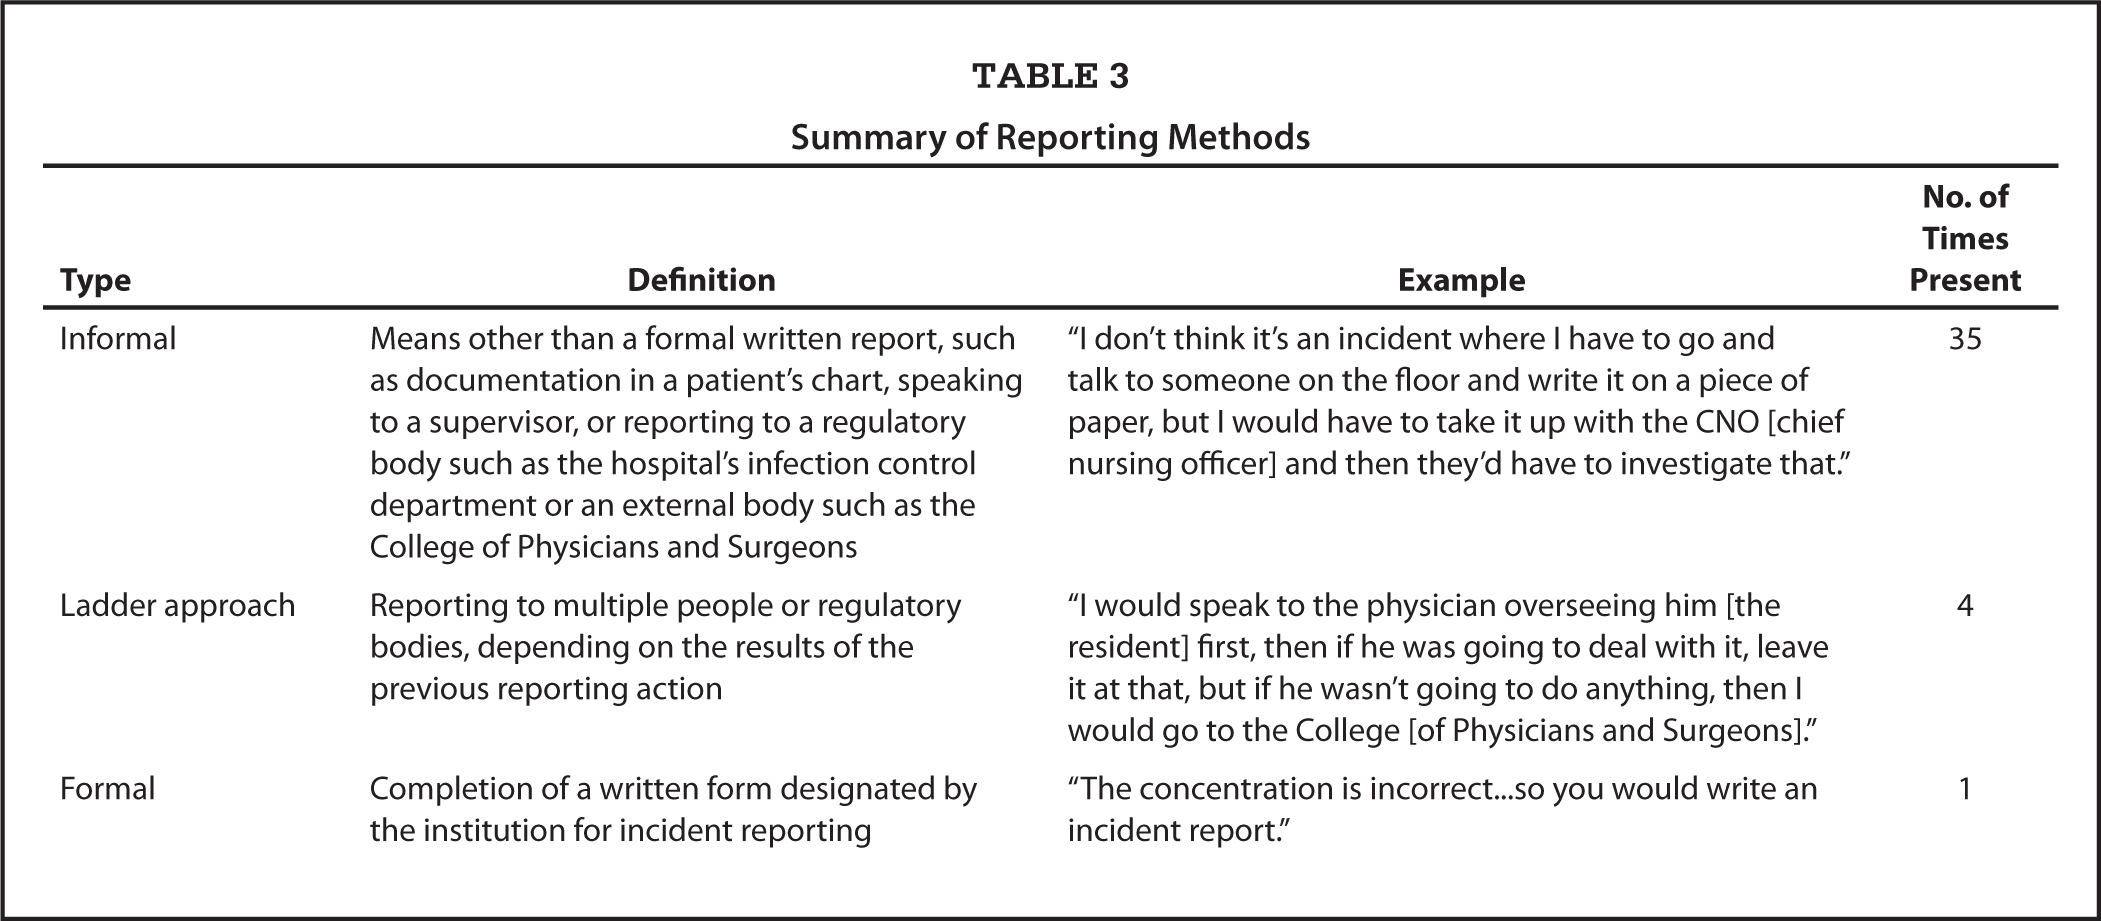 Summary of Reporting Methods